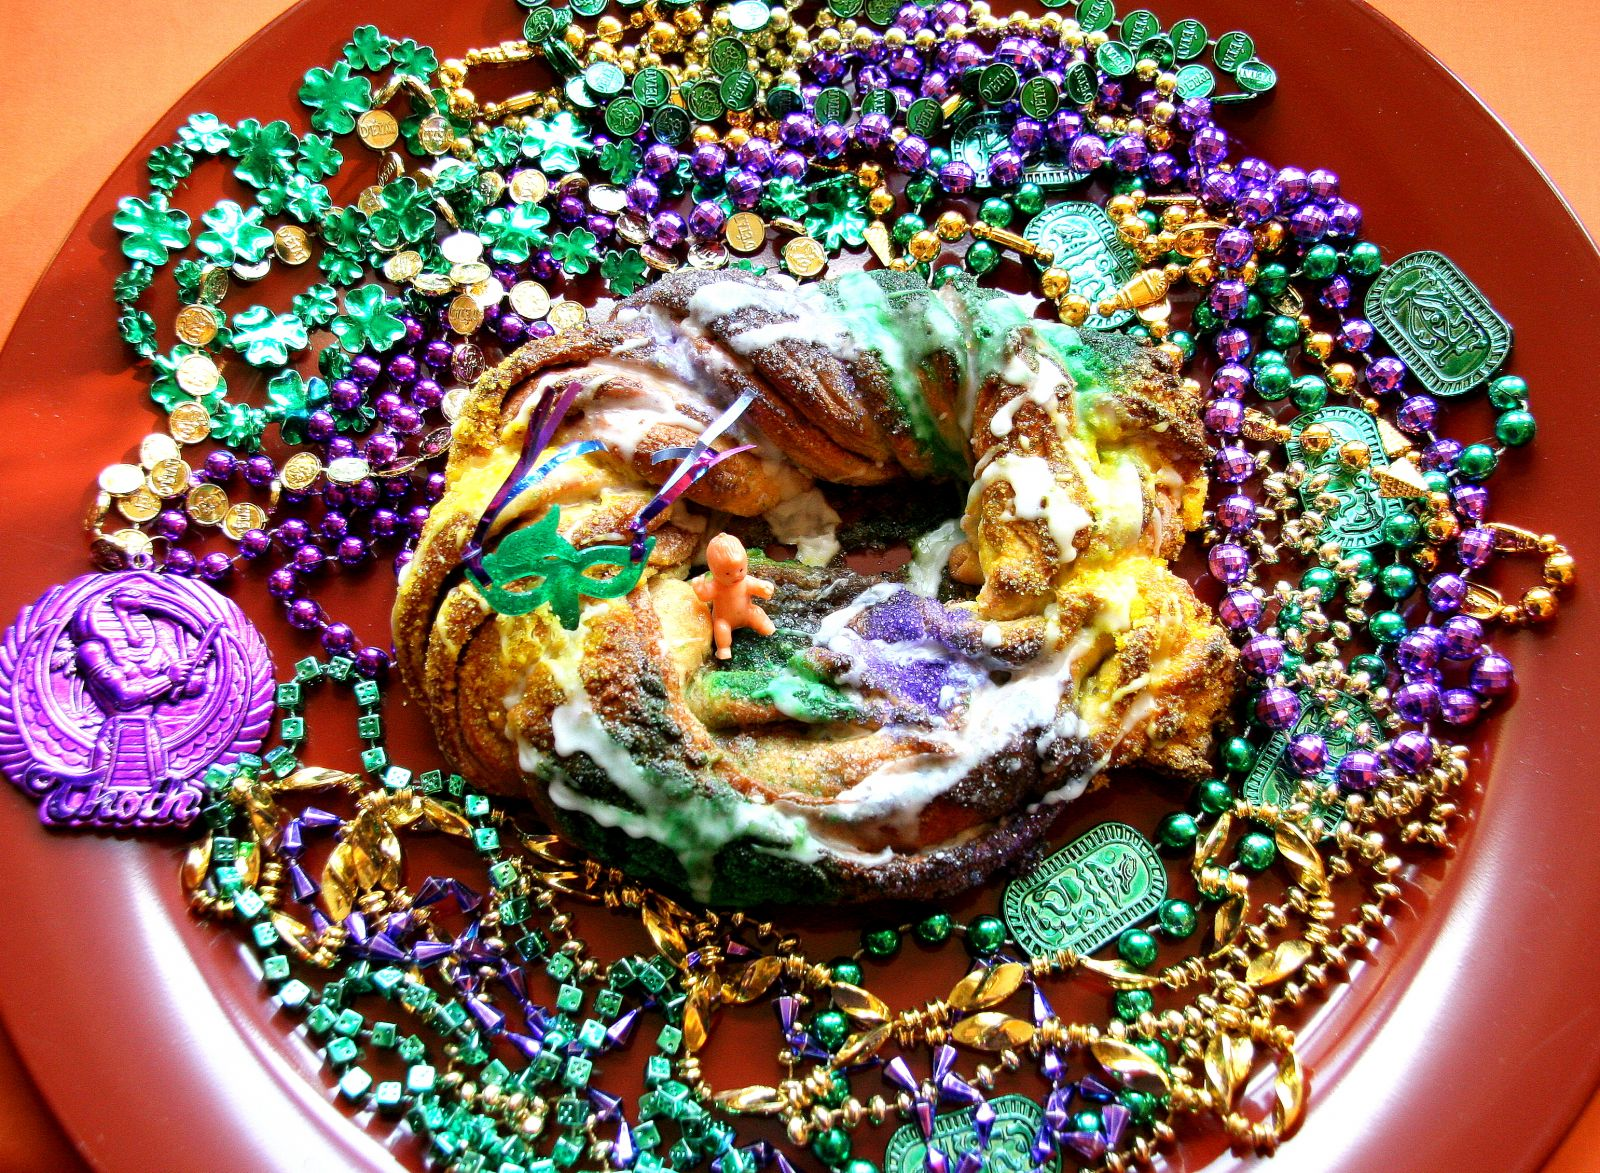 King Cake via Mary Lou Heiss